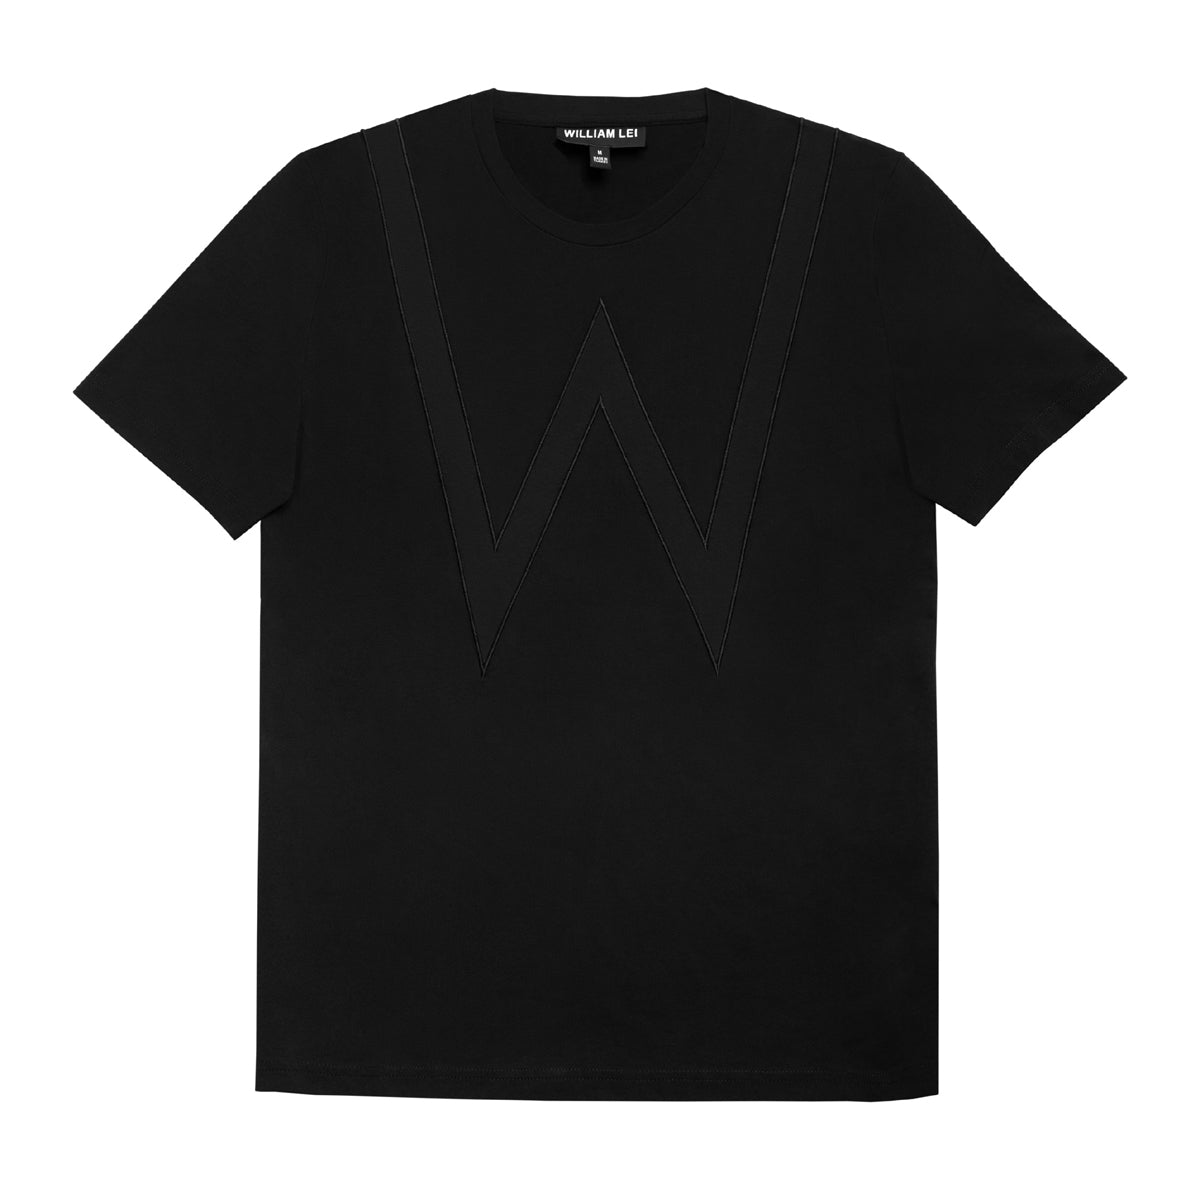 W APPLIQUE CREWNECK T-SHIRT - BLACK